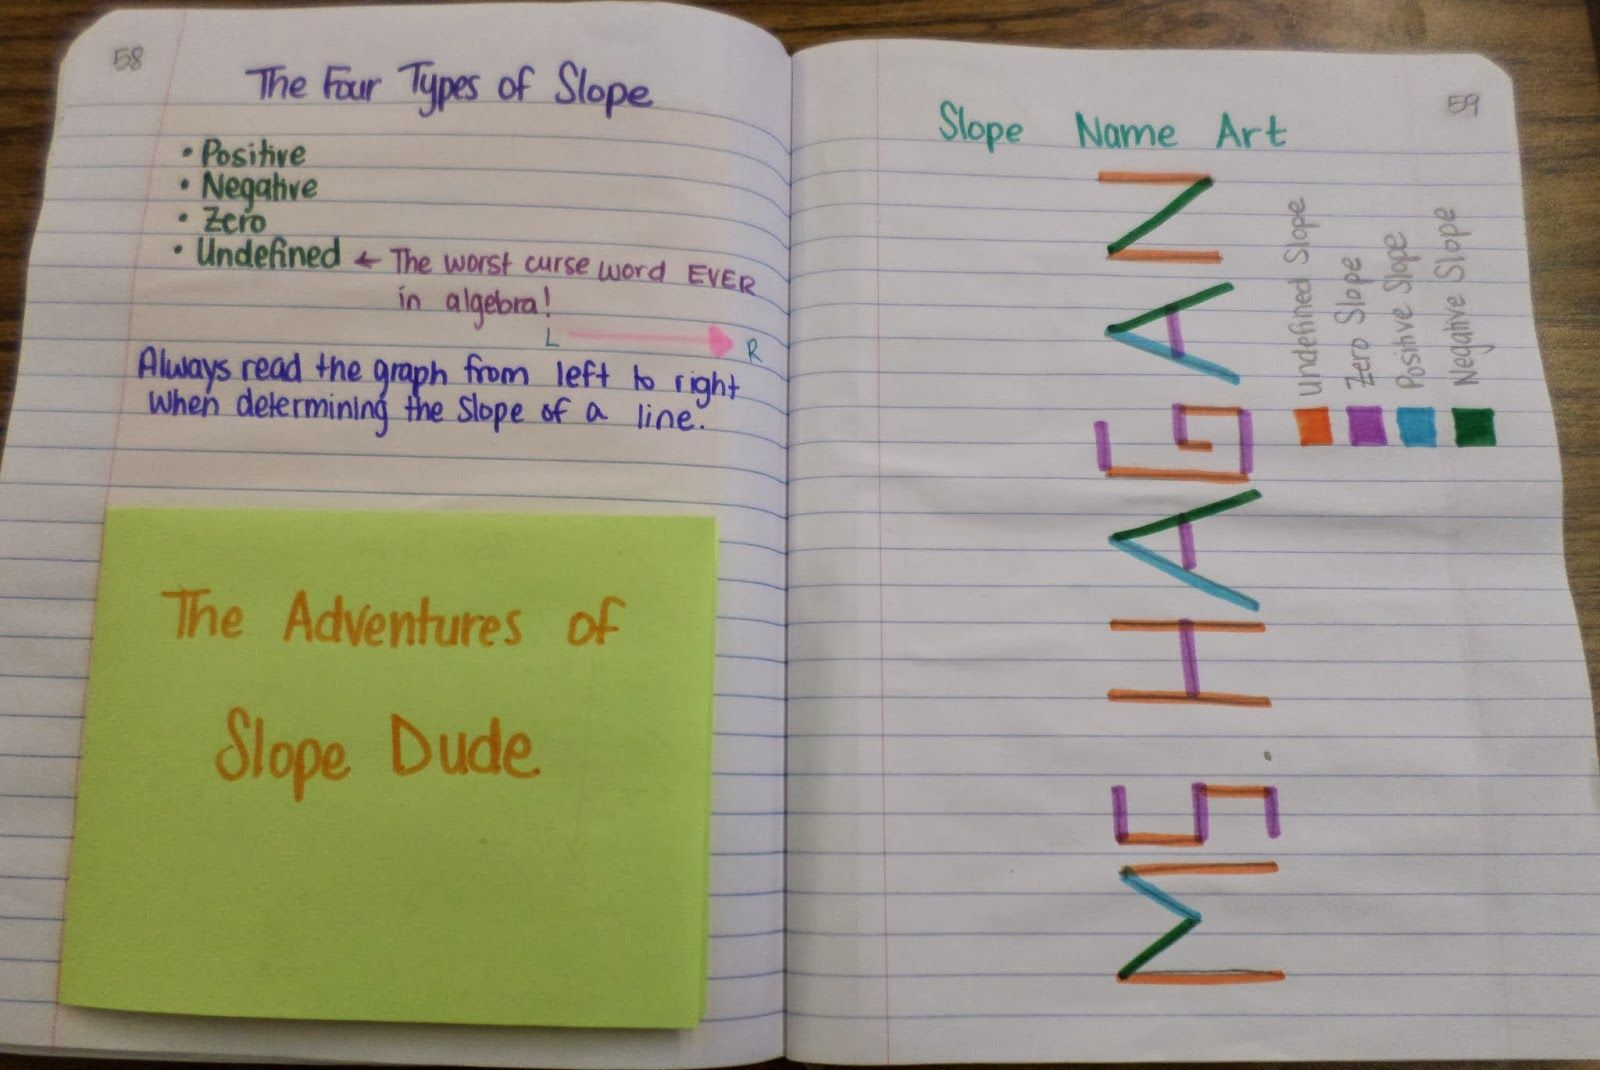 Four Types Of Slope Adventures Of Slope Dude Slope Name